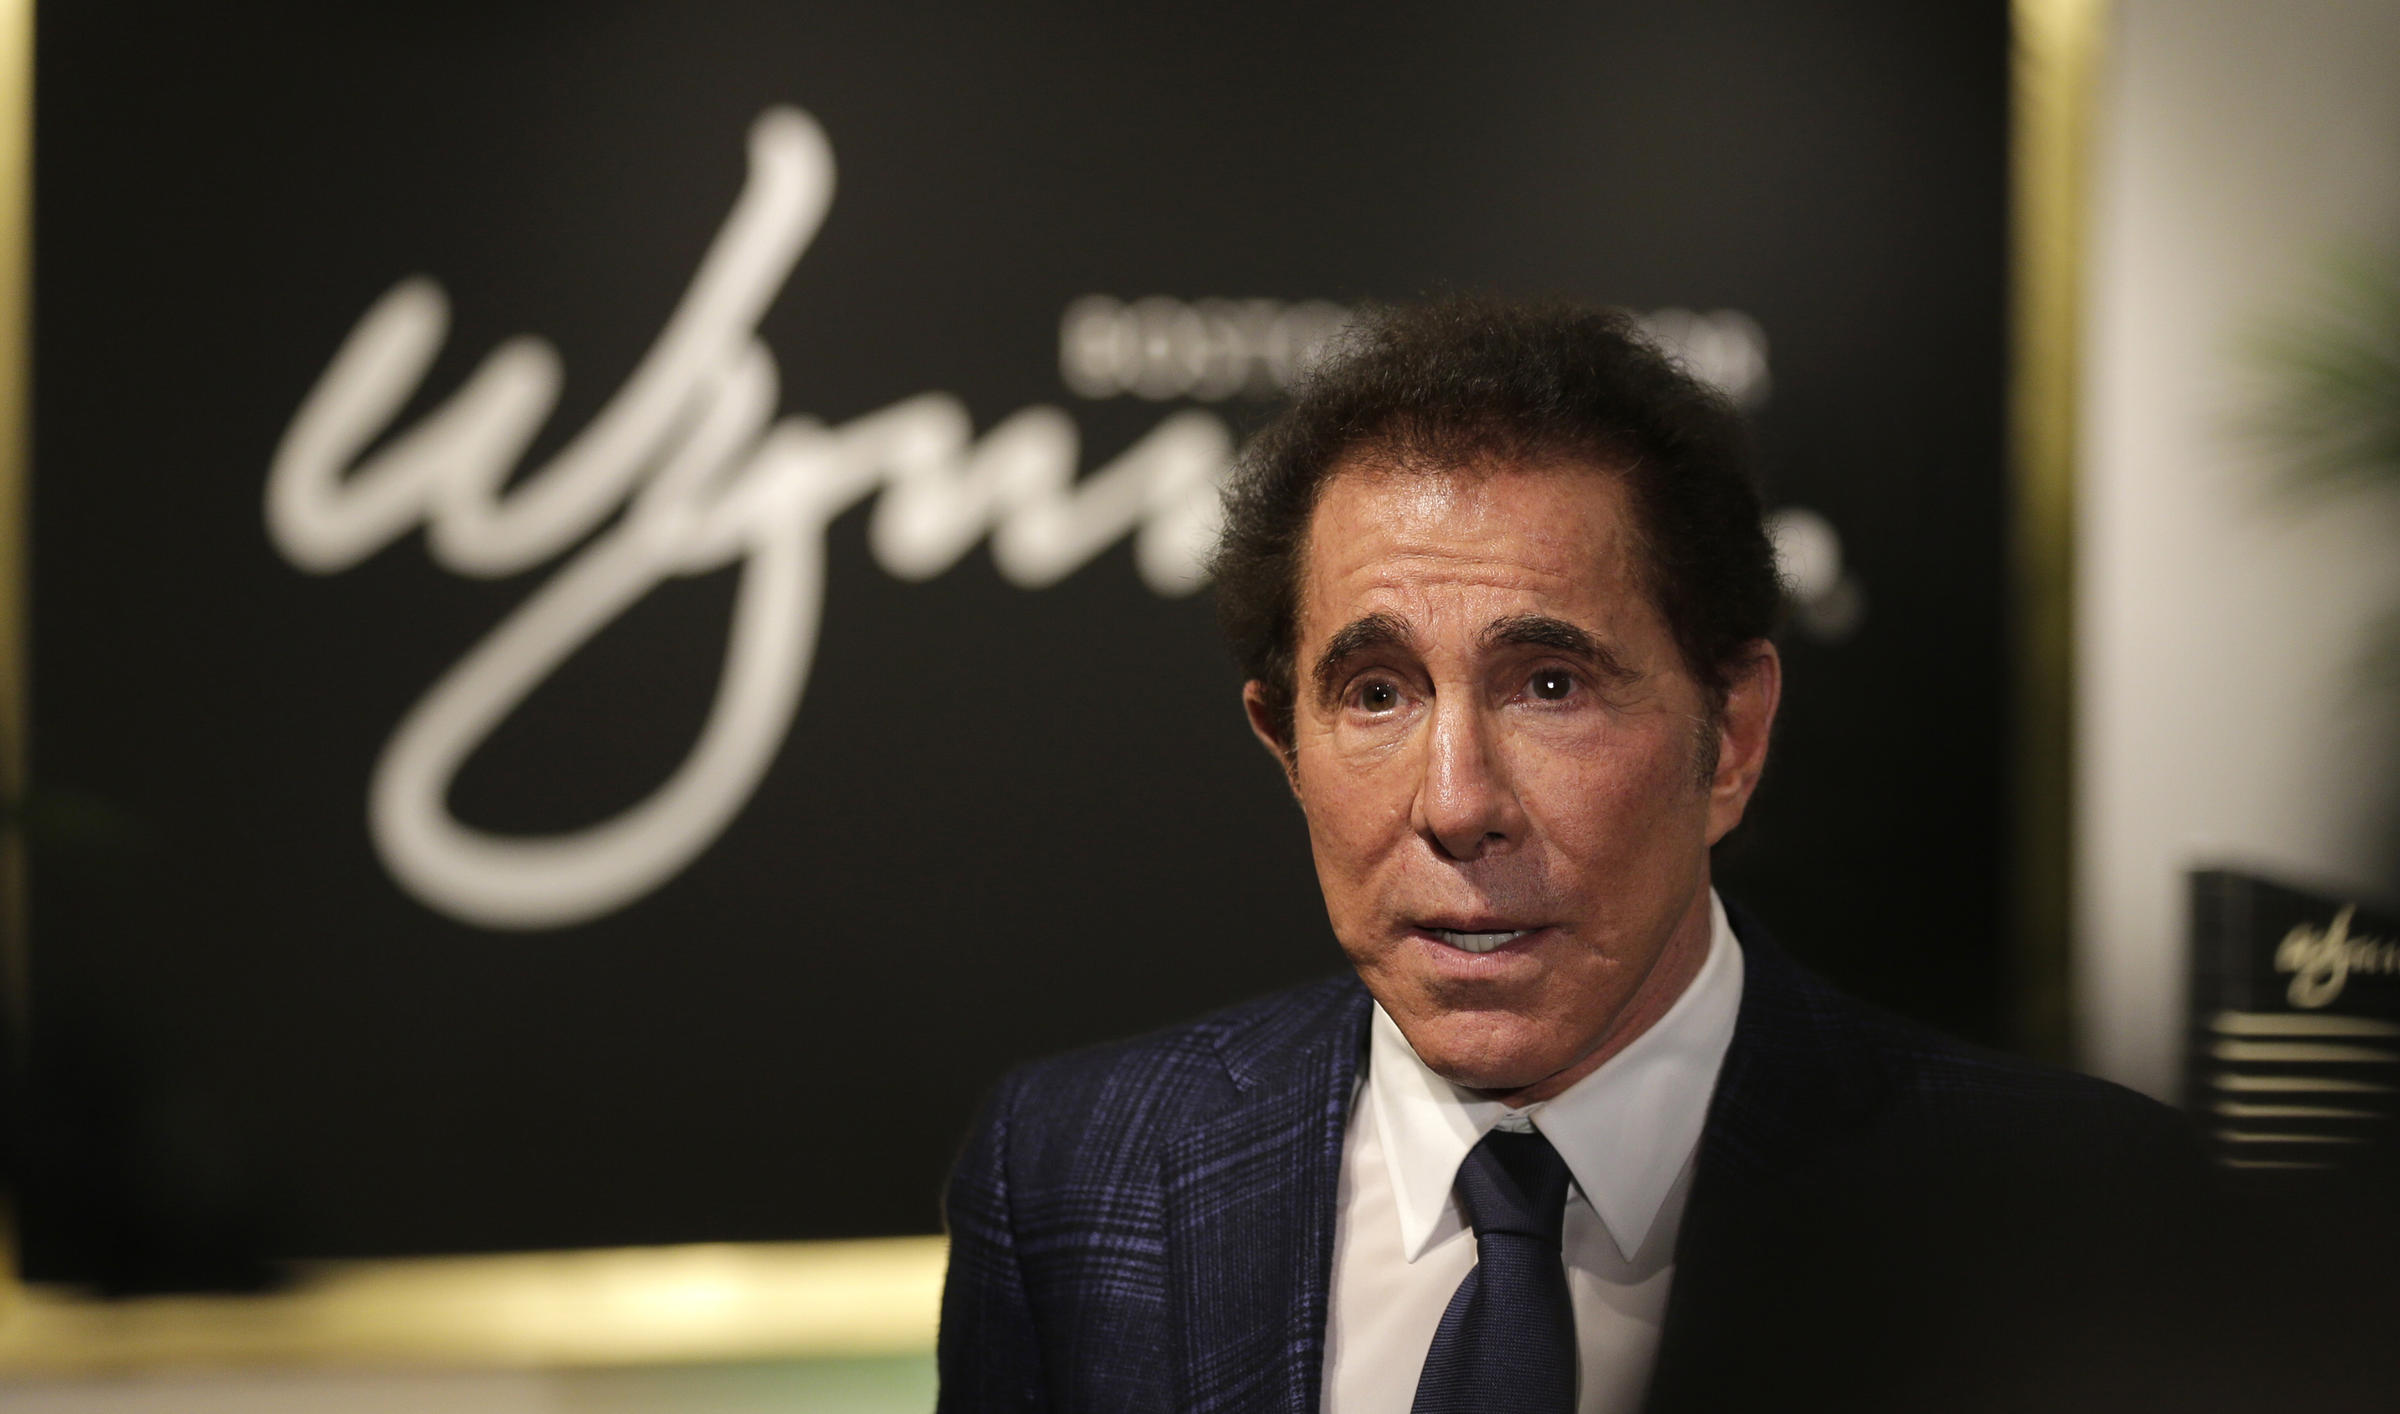 Wynn's Incredibly Tone Deaf Response to Sexual Harassment and Assault Allegations